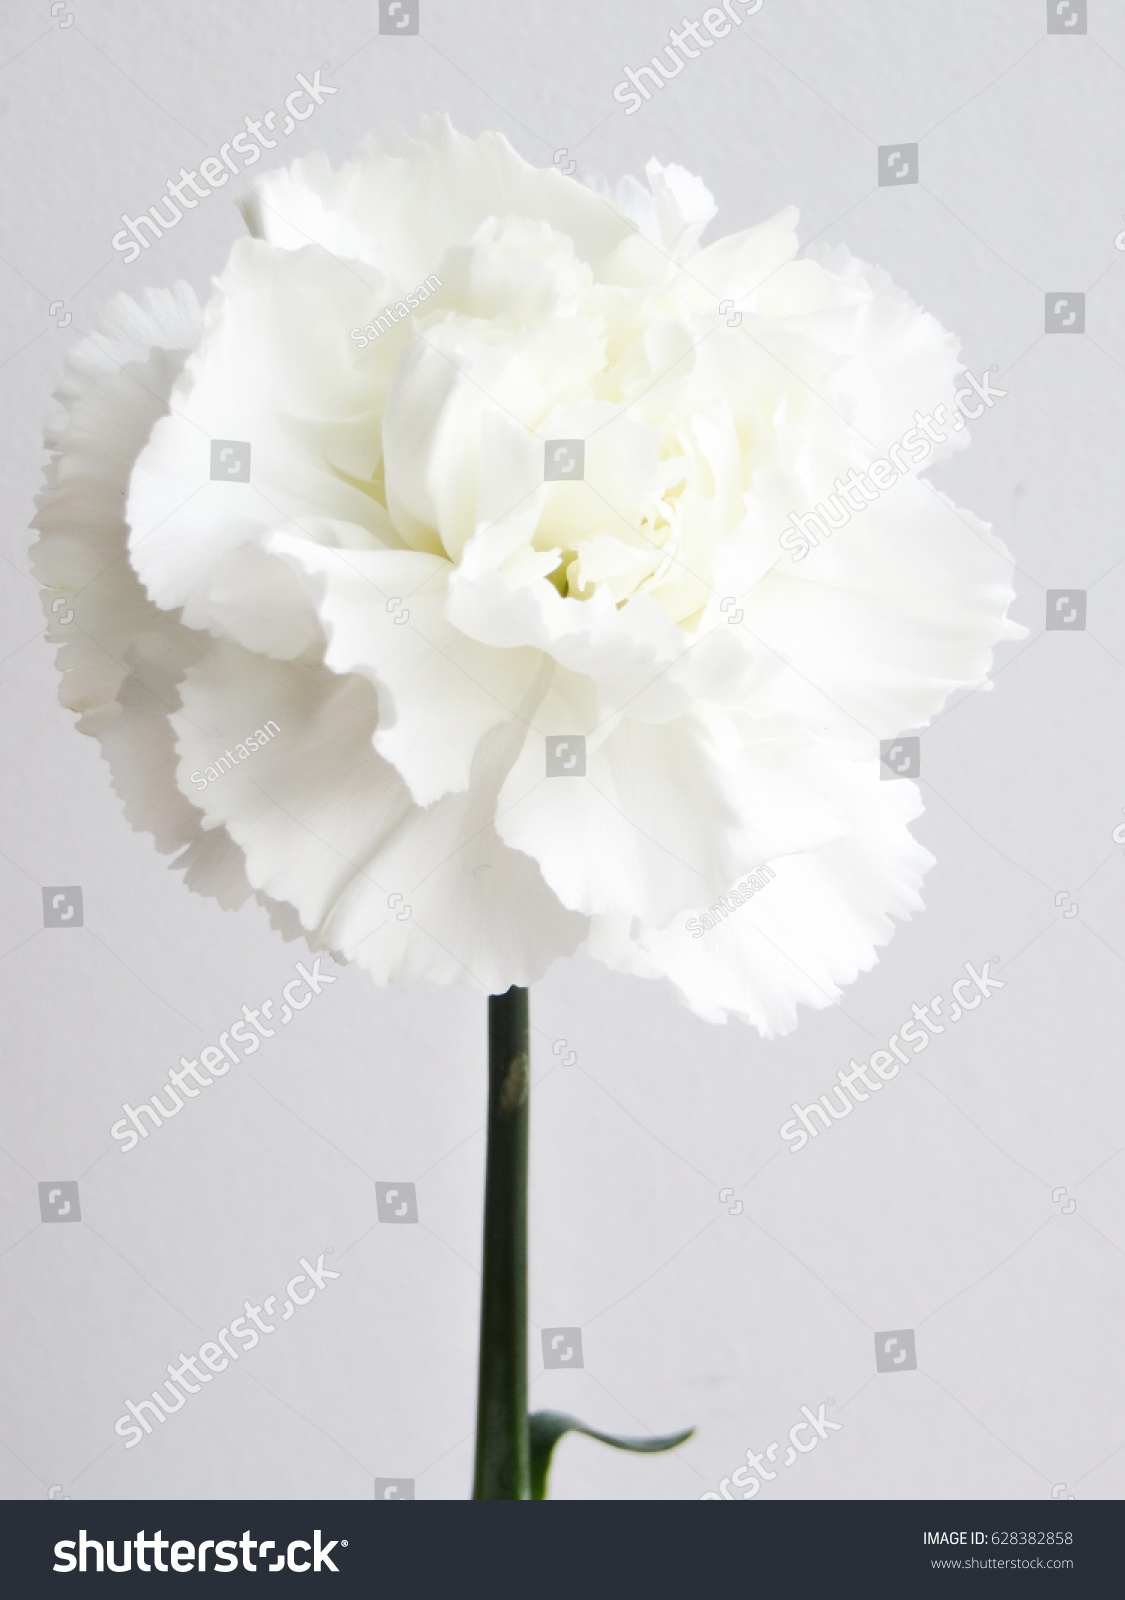 Beautiful White Carnation Flowers White Flower Stock Photo (Royalty ...